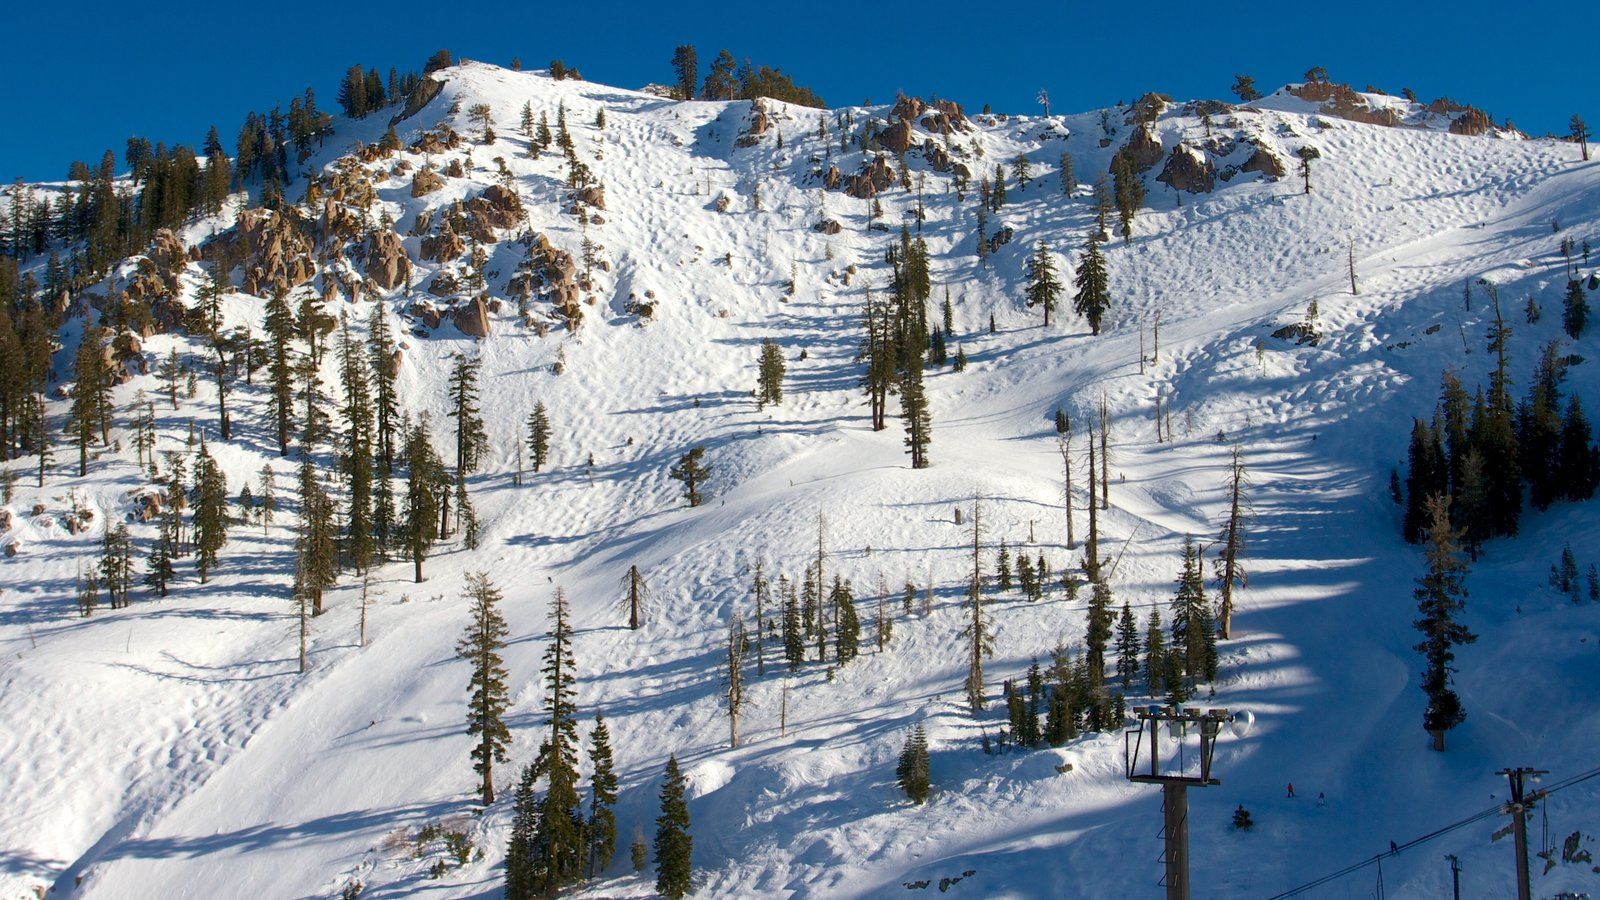 Squaw Valley Resort which includes mountains, snow and landscape views